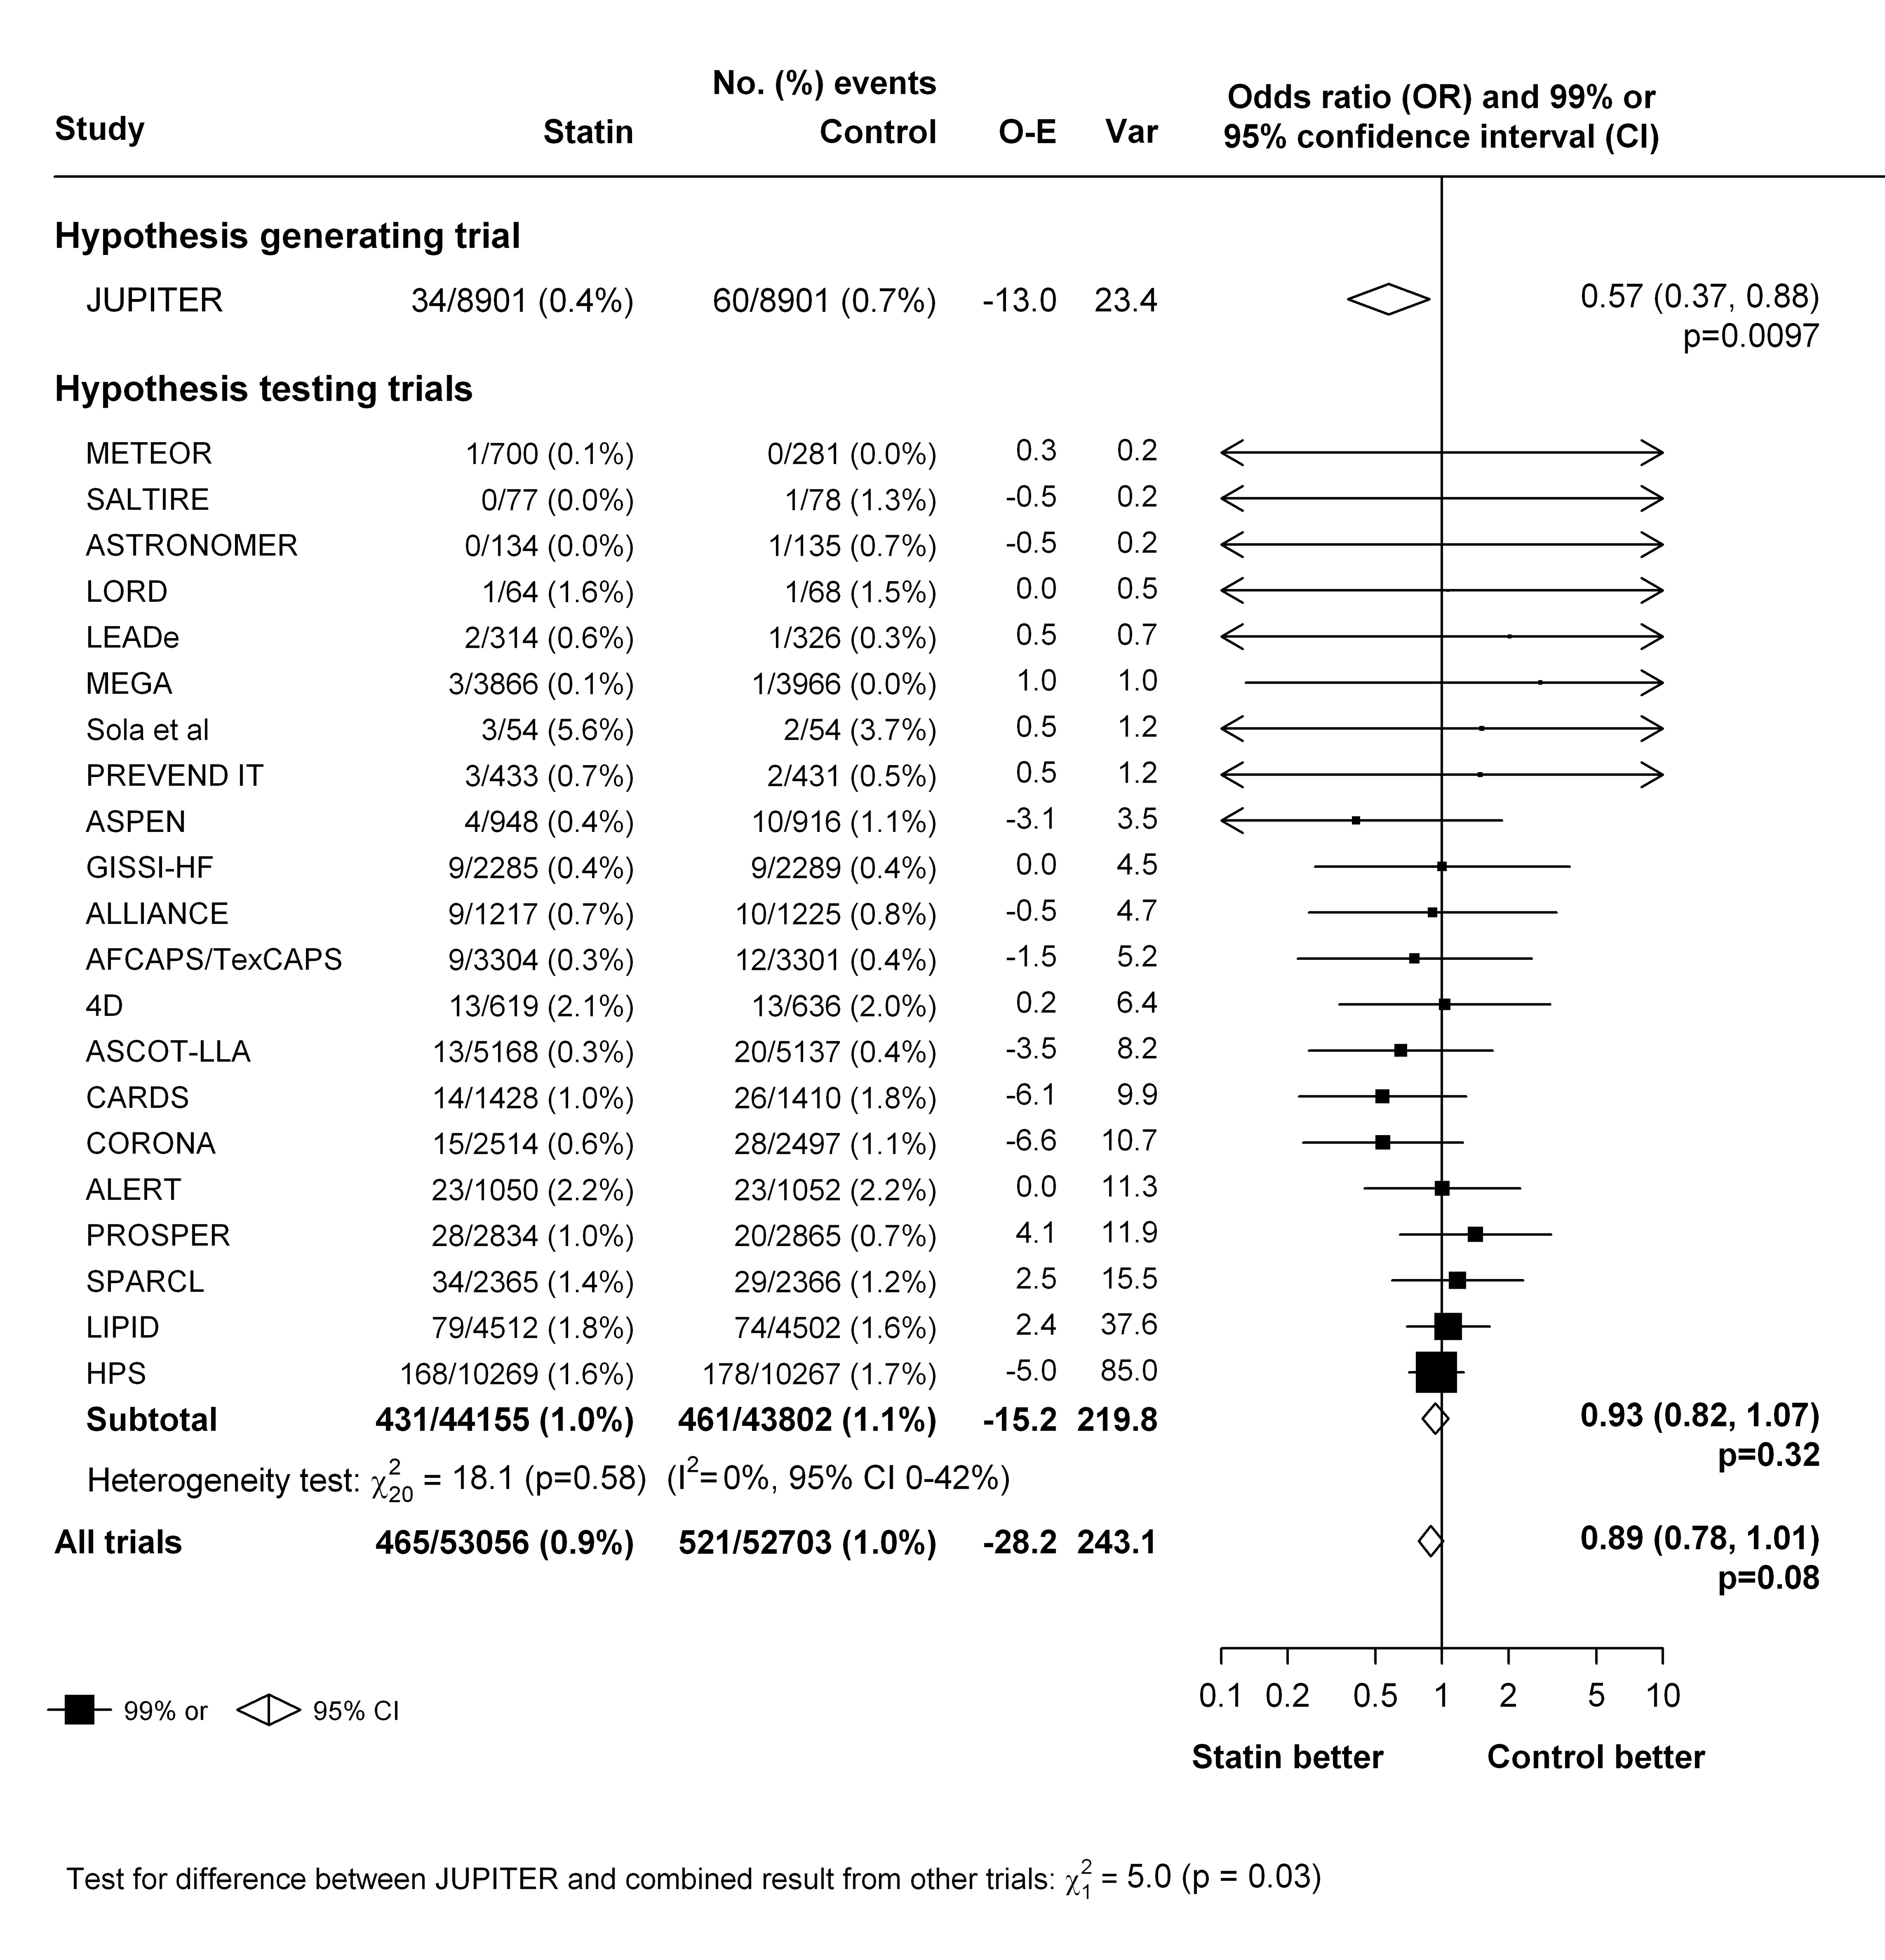 Effect of statin therapy on venous thromboembolism.